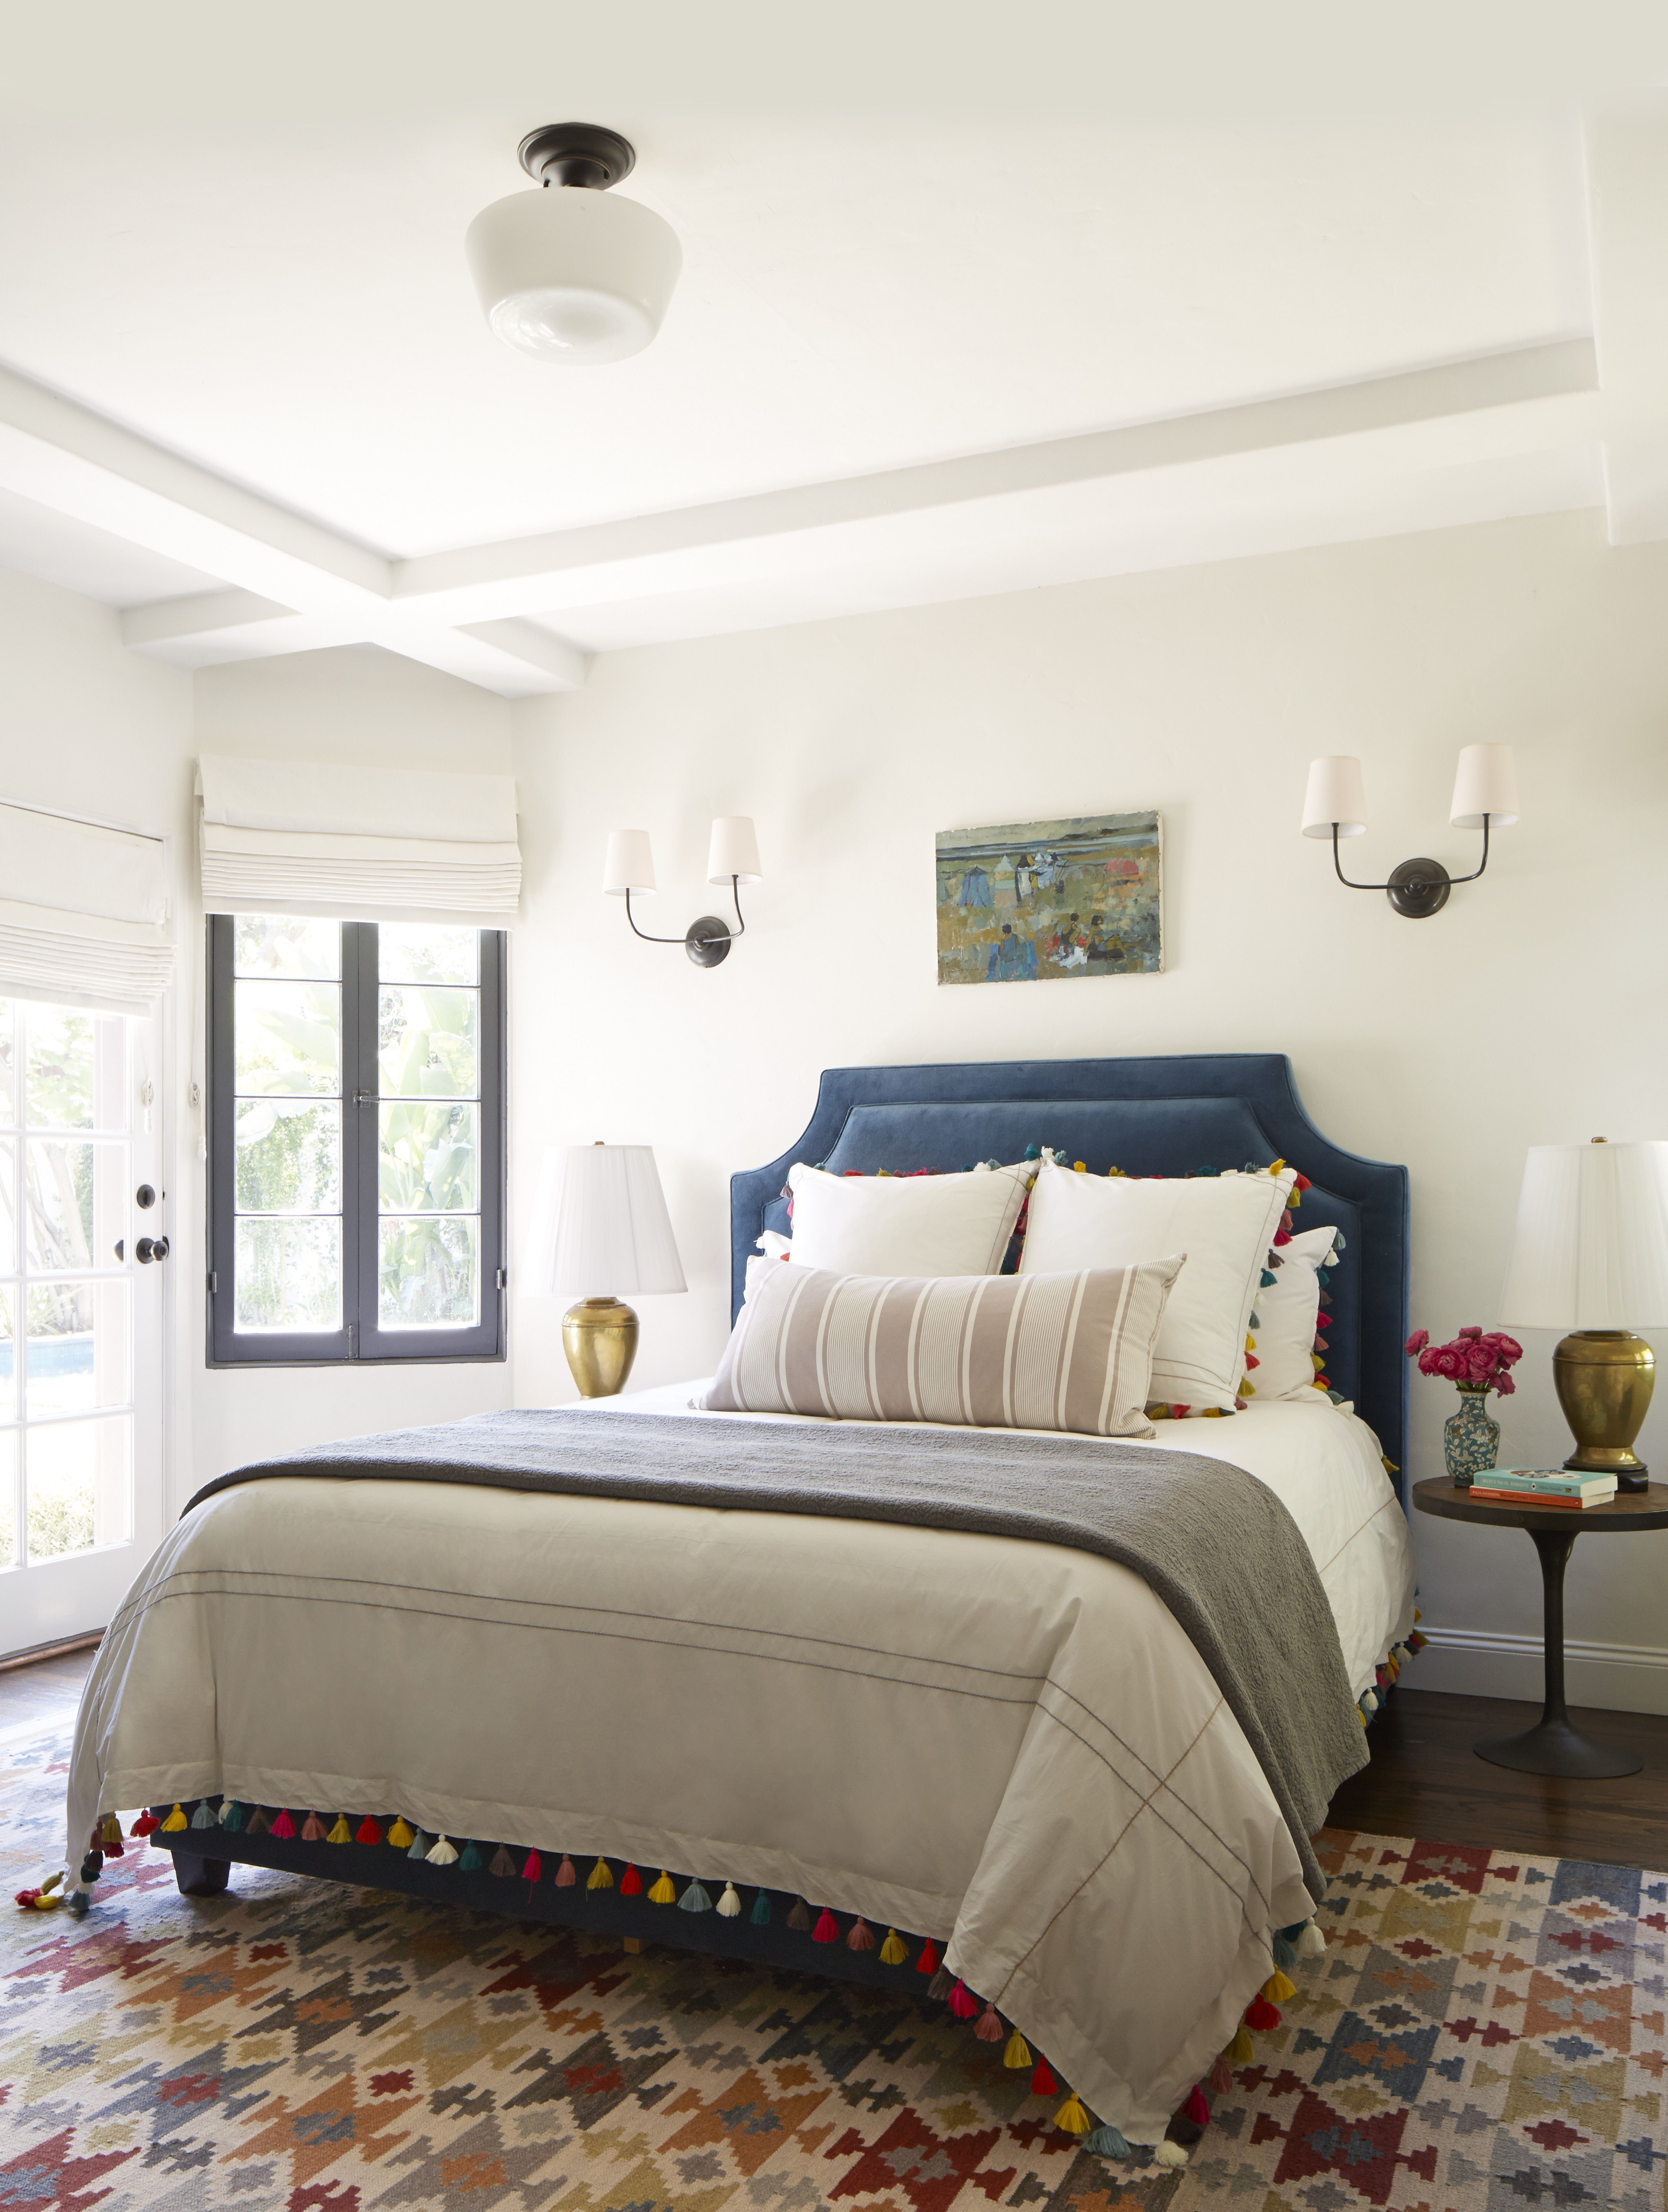 Best Rustic Spanish California Home – Simple Eclectic Guest 400 x 300